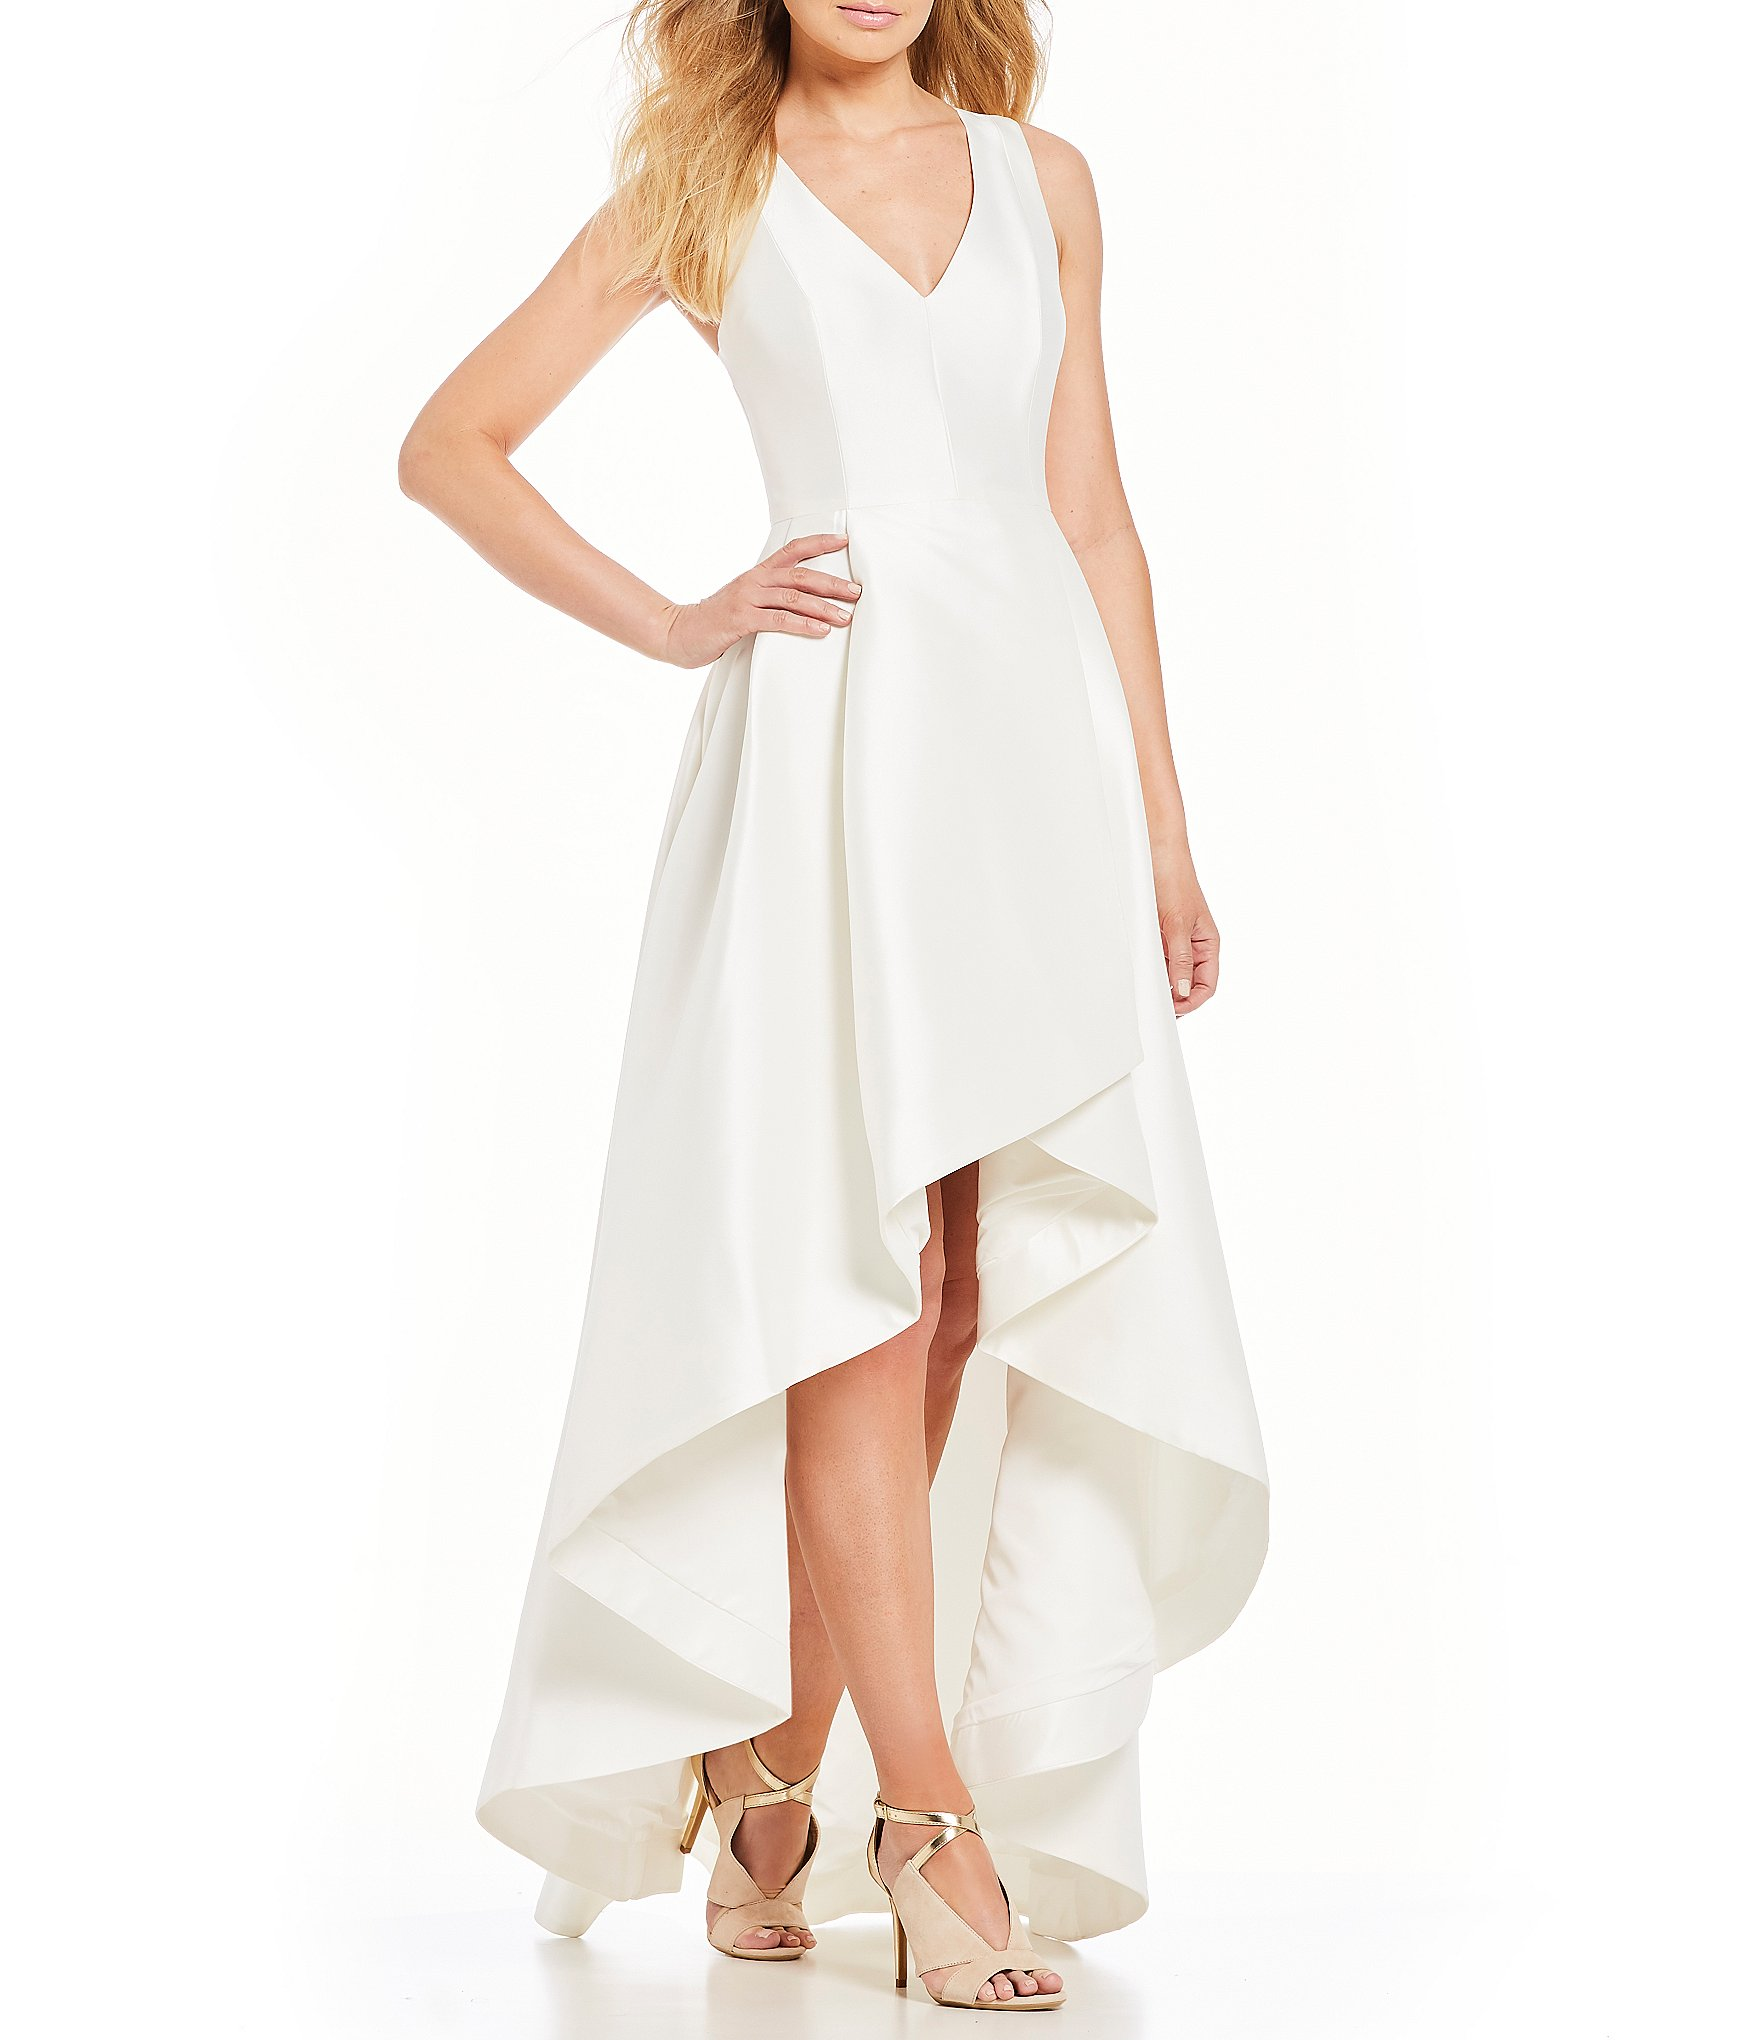 high low dresses wedding guest photo - 1